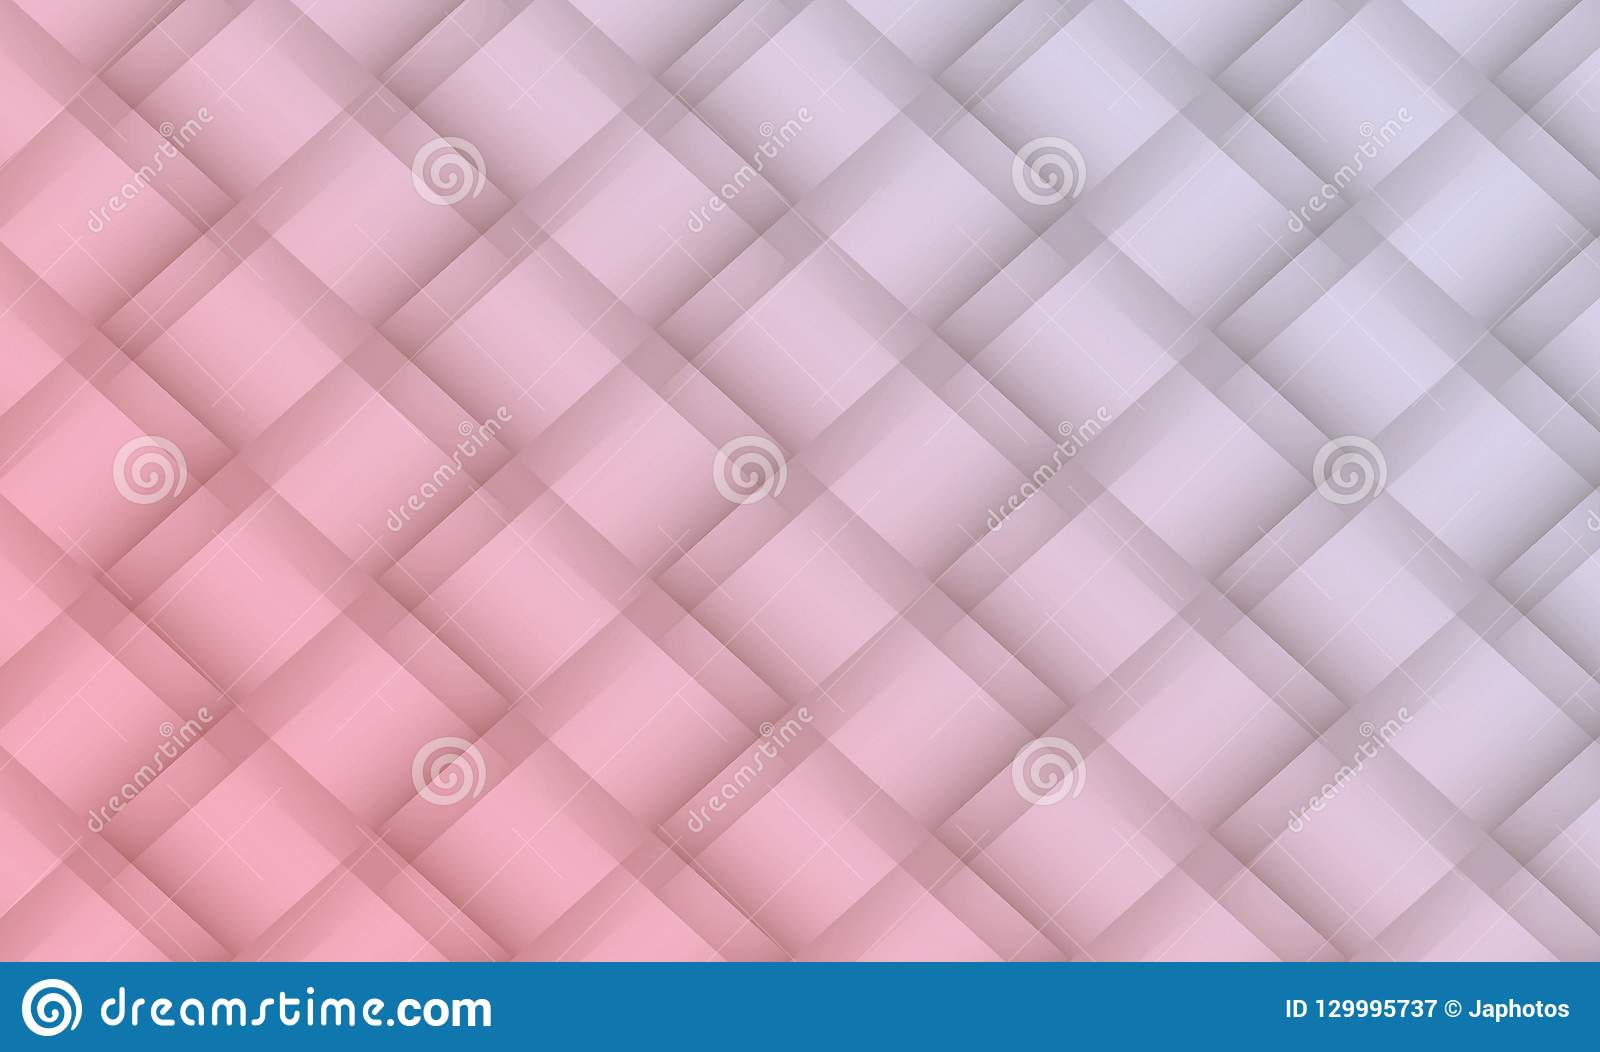 Soft pink and light gray diagonal geometric squares lattice abstract pattern background illustration